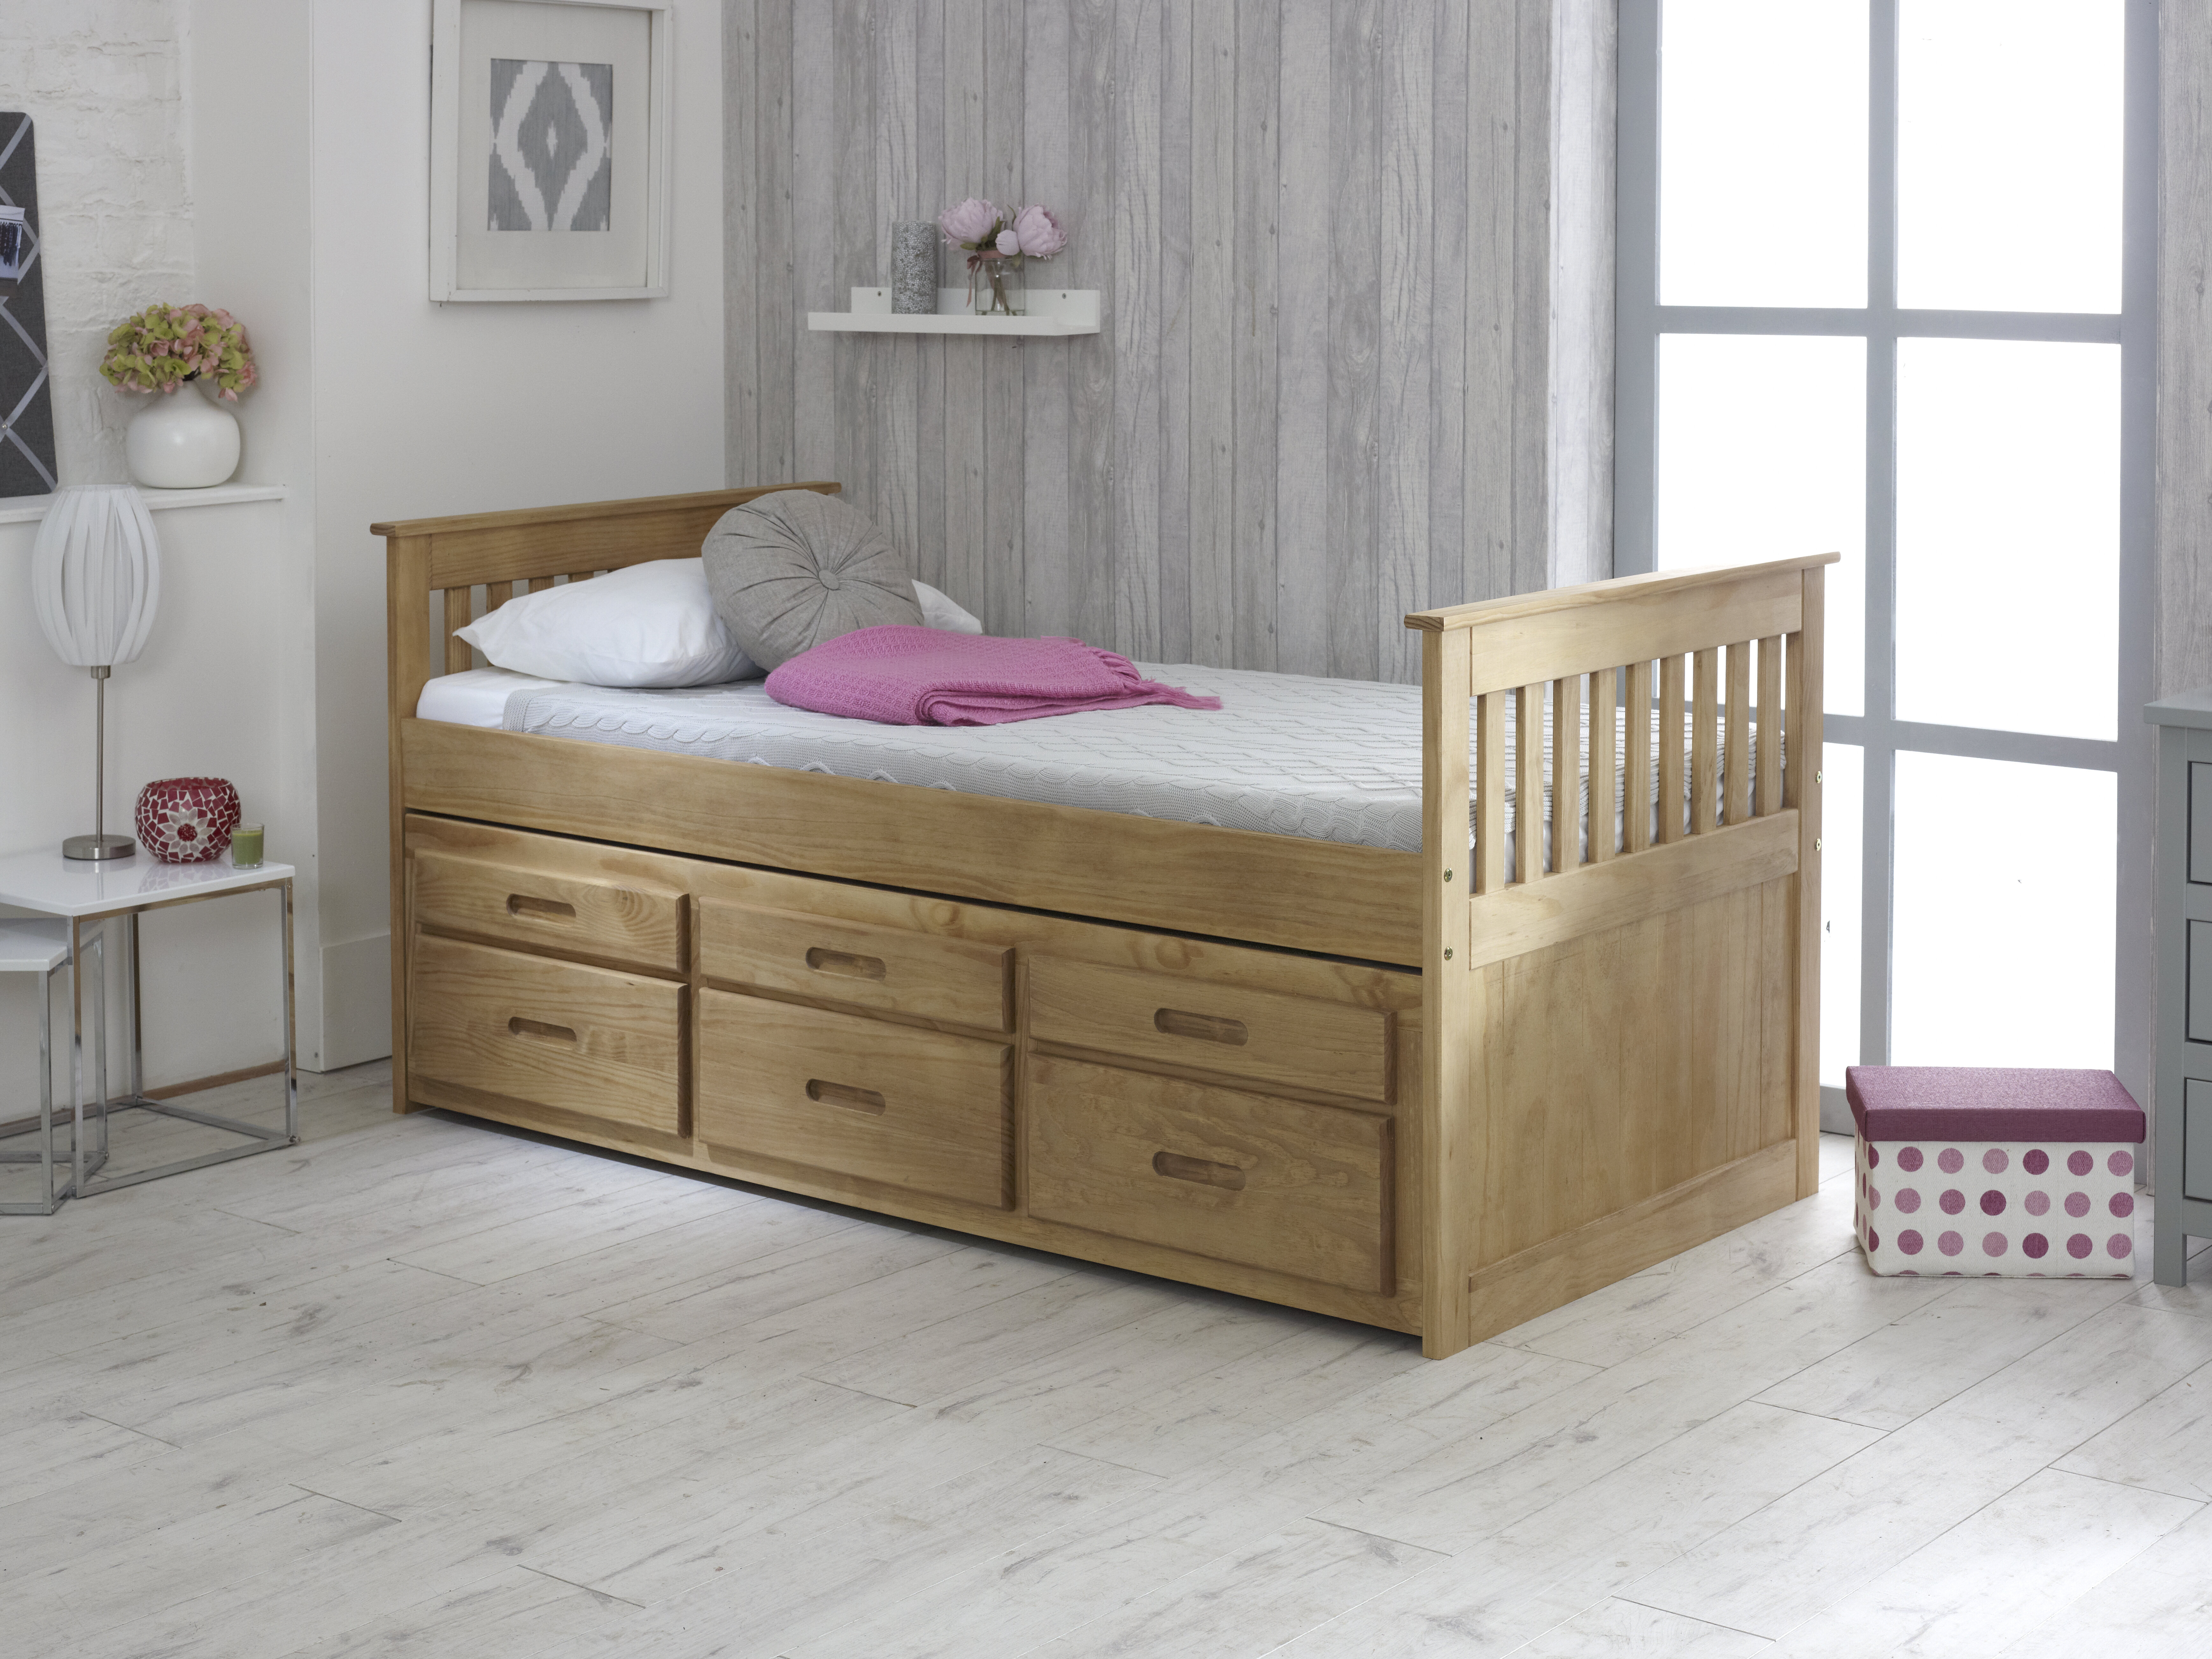 Picture of: Just Kids Captains Single Cabin Bed With Trundle And Drawers Reviews